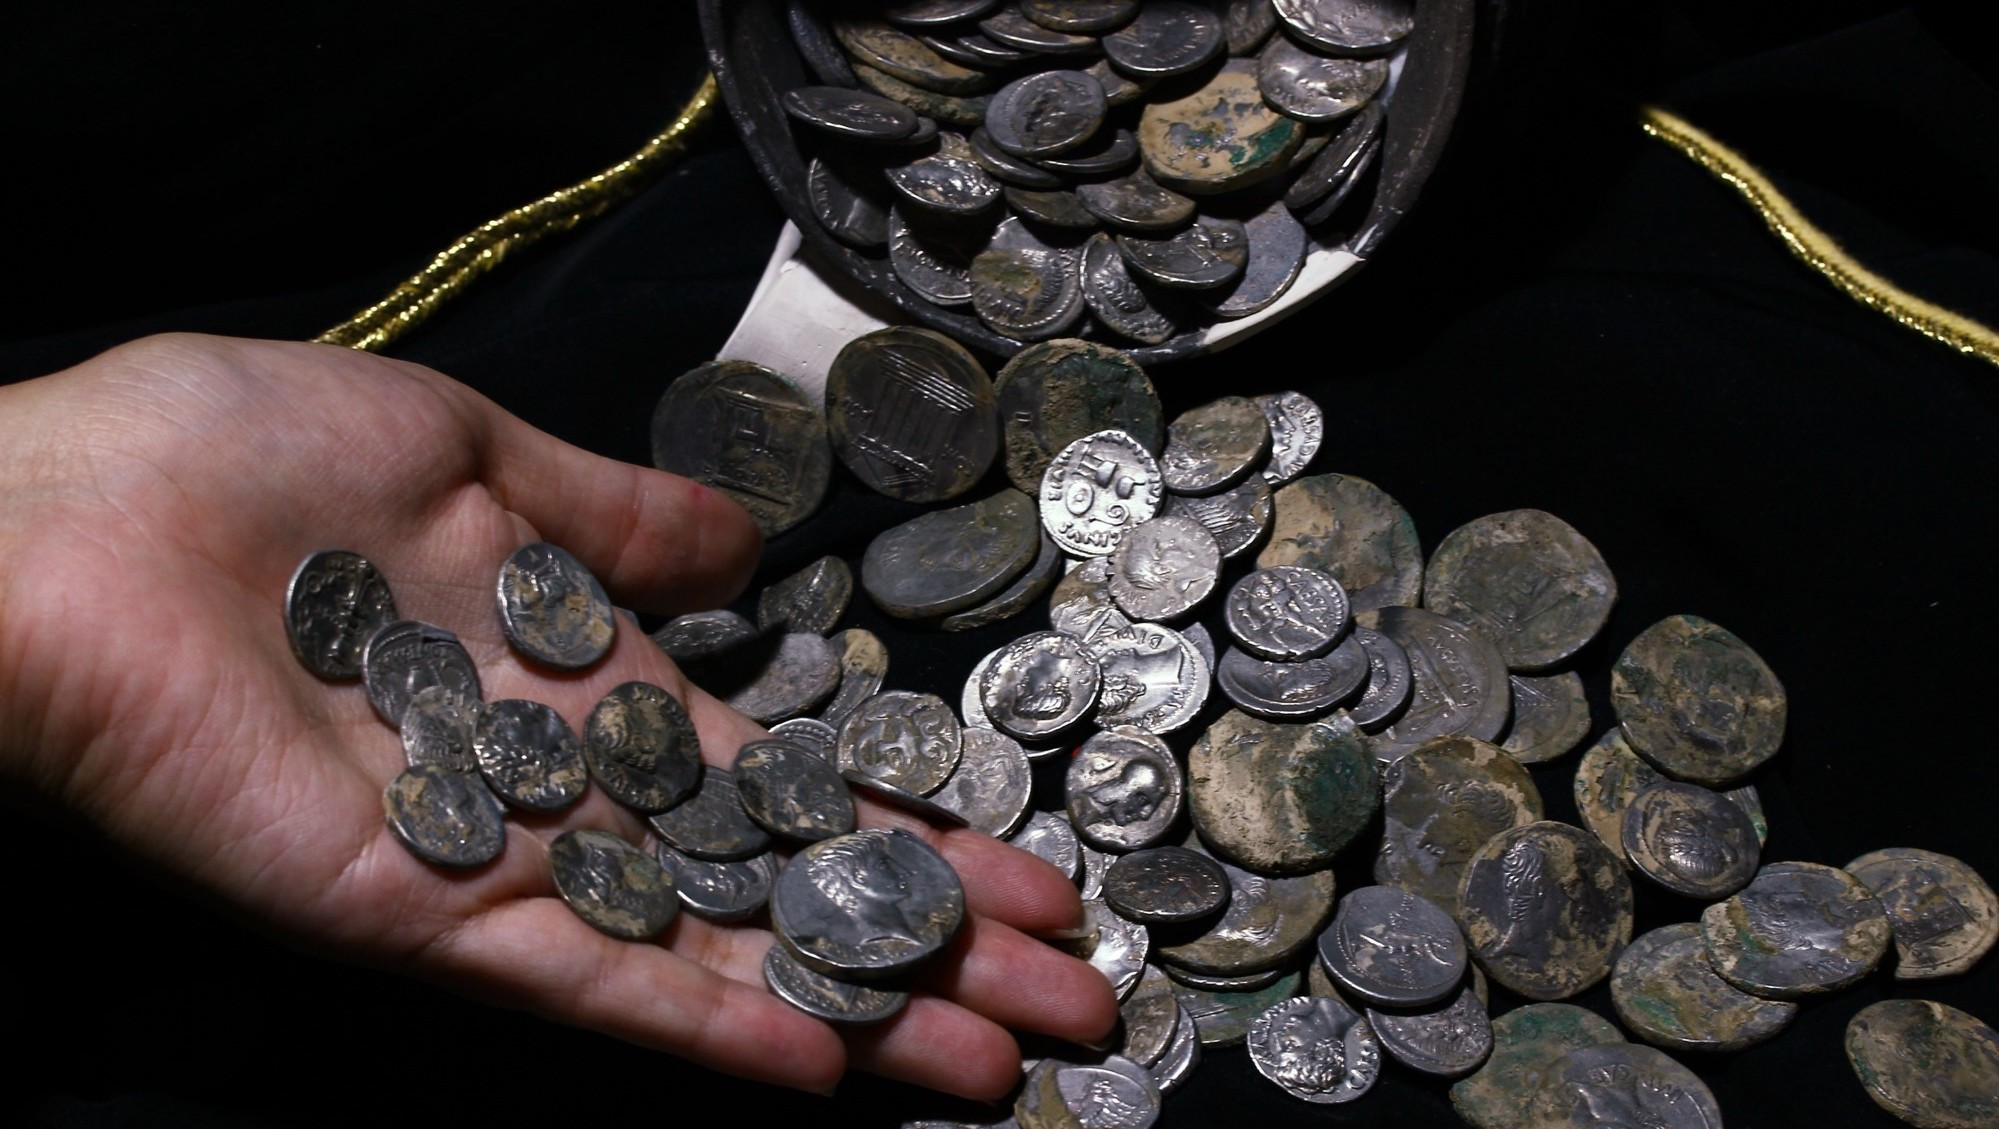 The coins are about 2,100 years old.